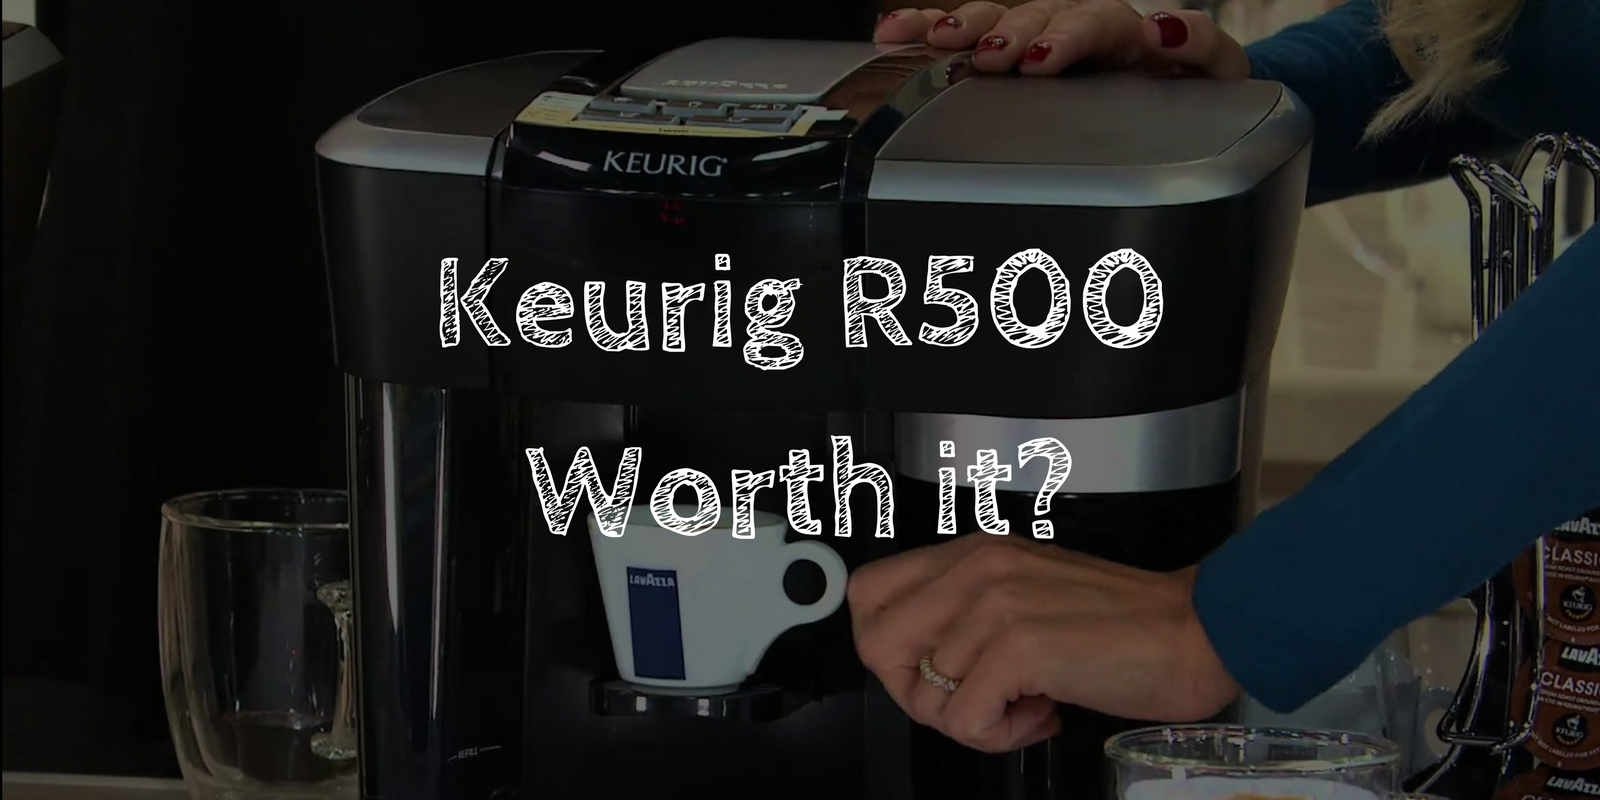 Is The Keurig R500 a Good Espresso Machine?